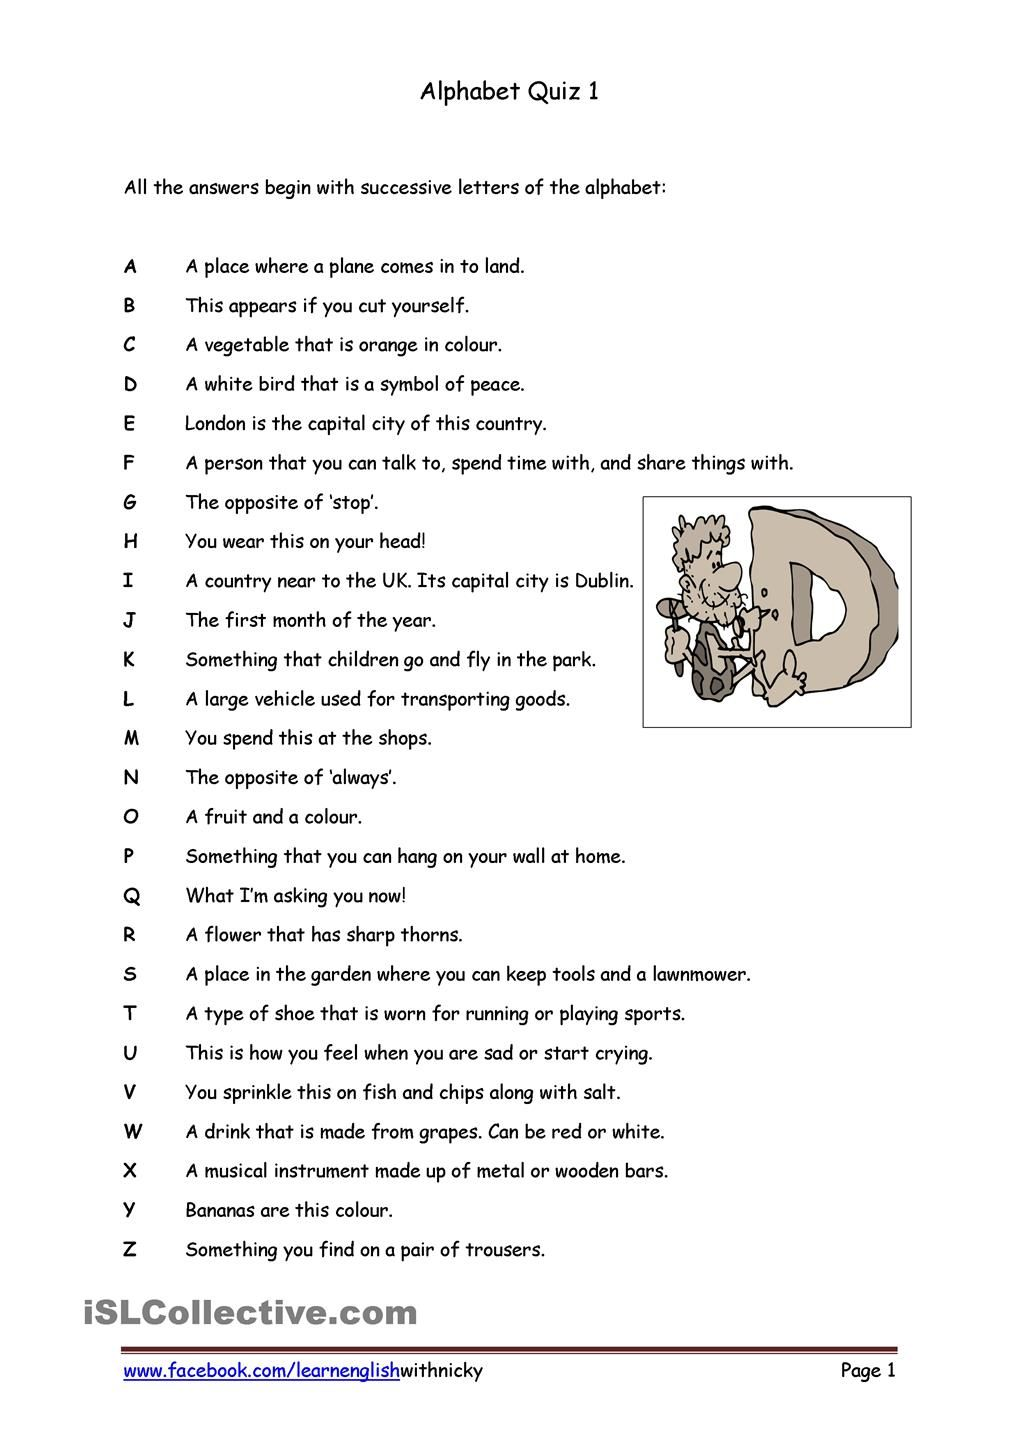 Workbooks wacky wordies worksheets : Alphabet Quiz 1 | A Work Games | Pinterest | Worksheets and Activities